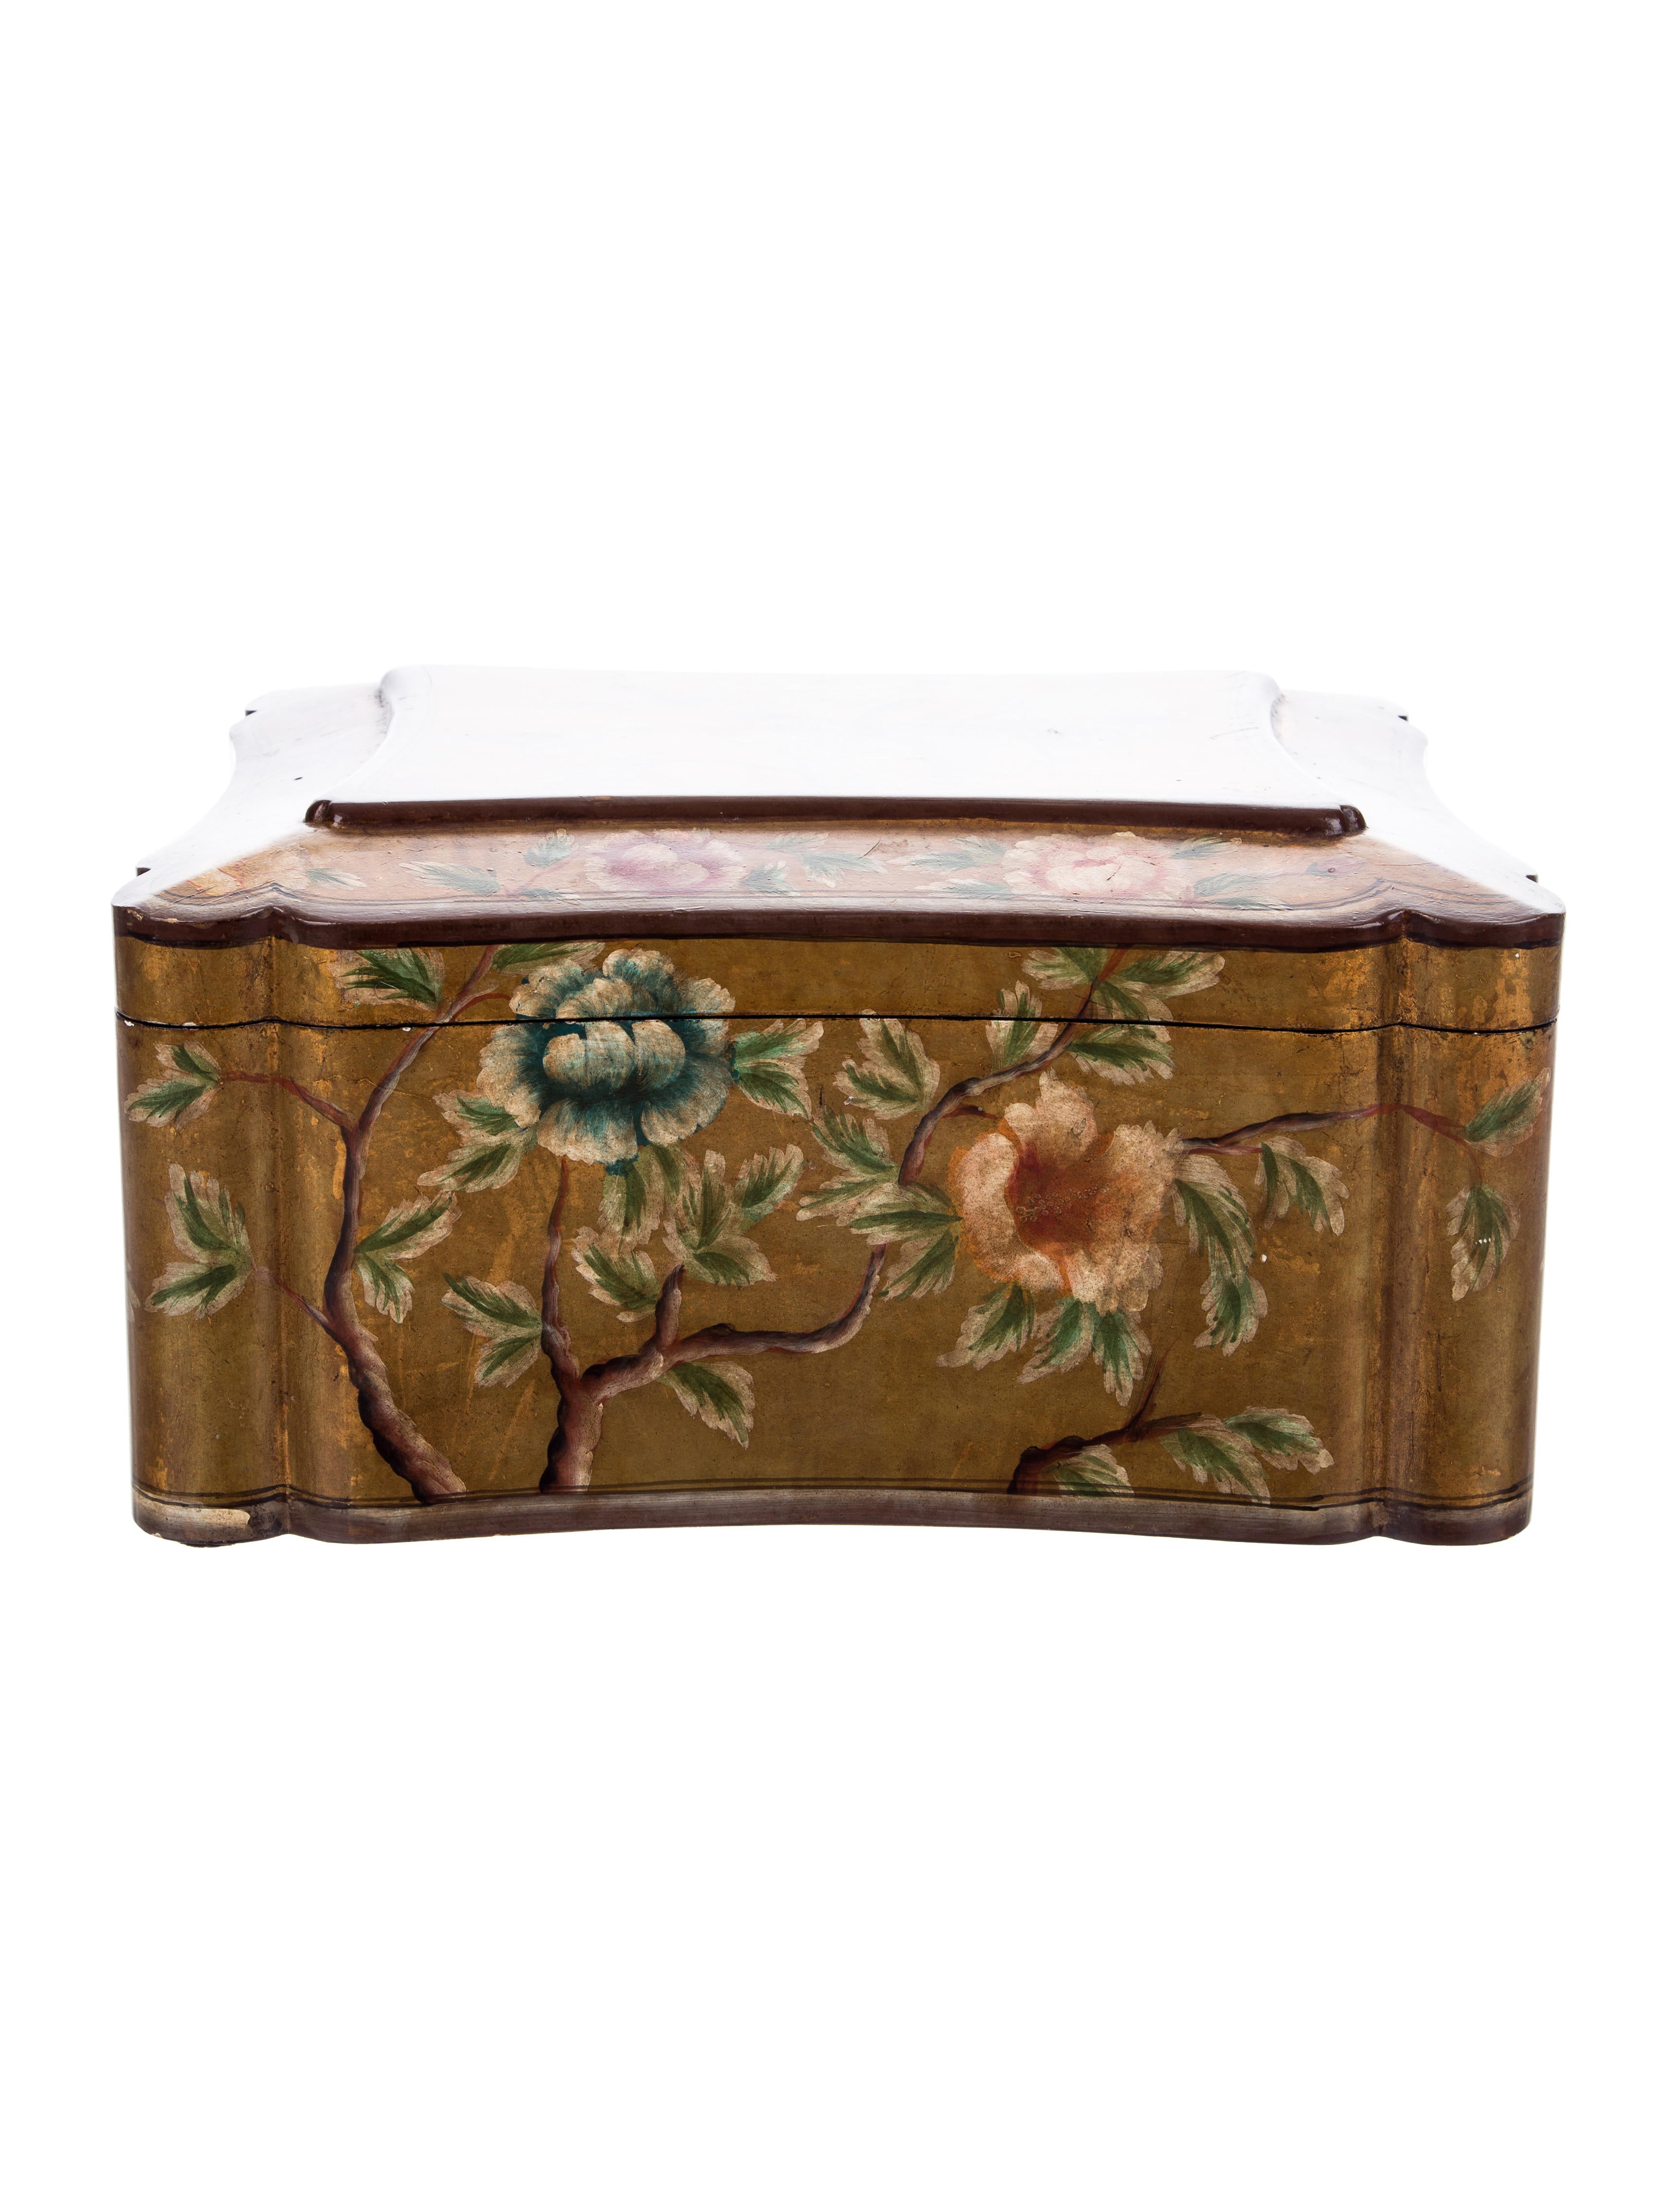 Hand painted wooden chest decor and accessories for Hand painted chests